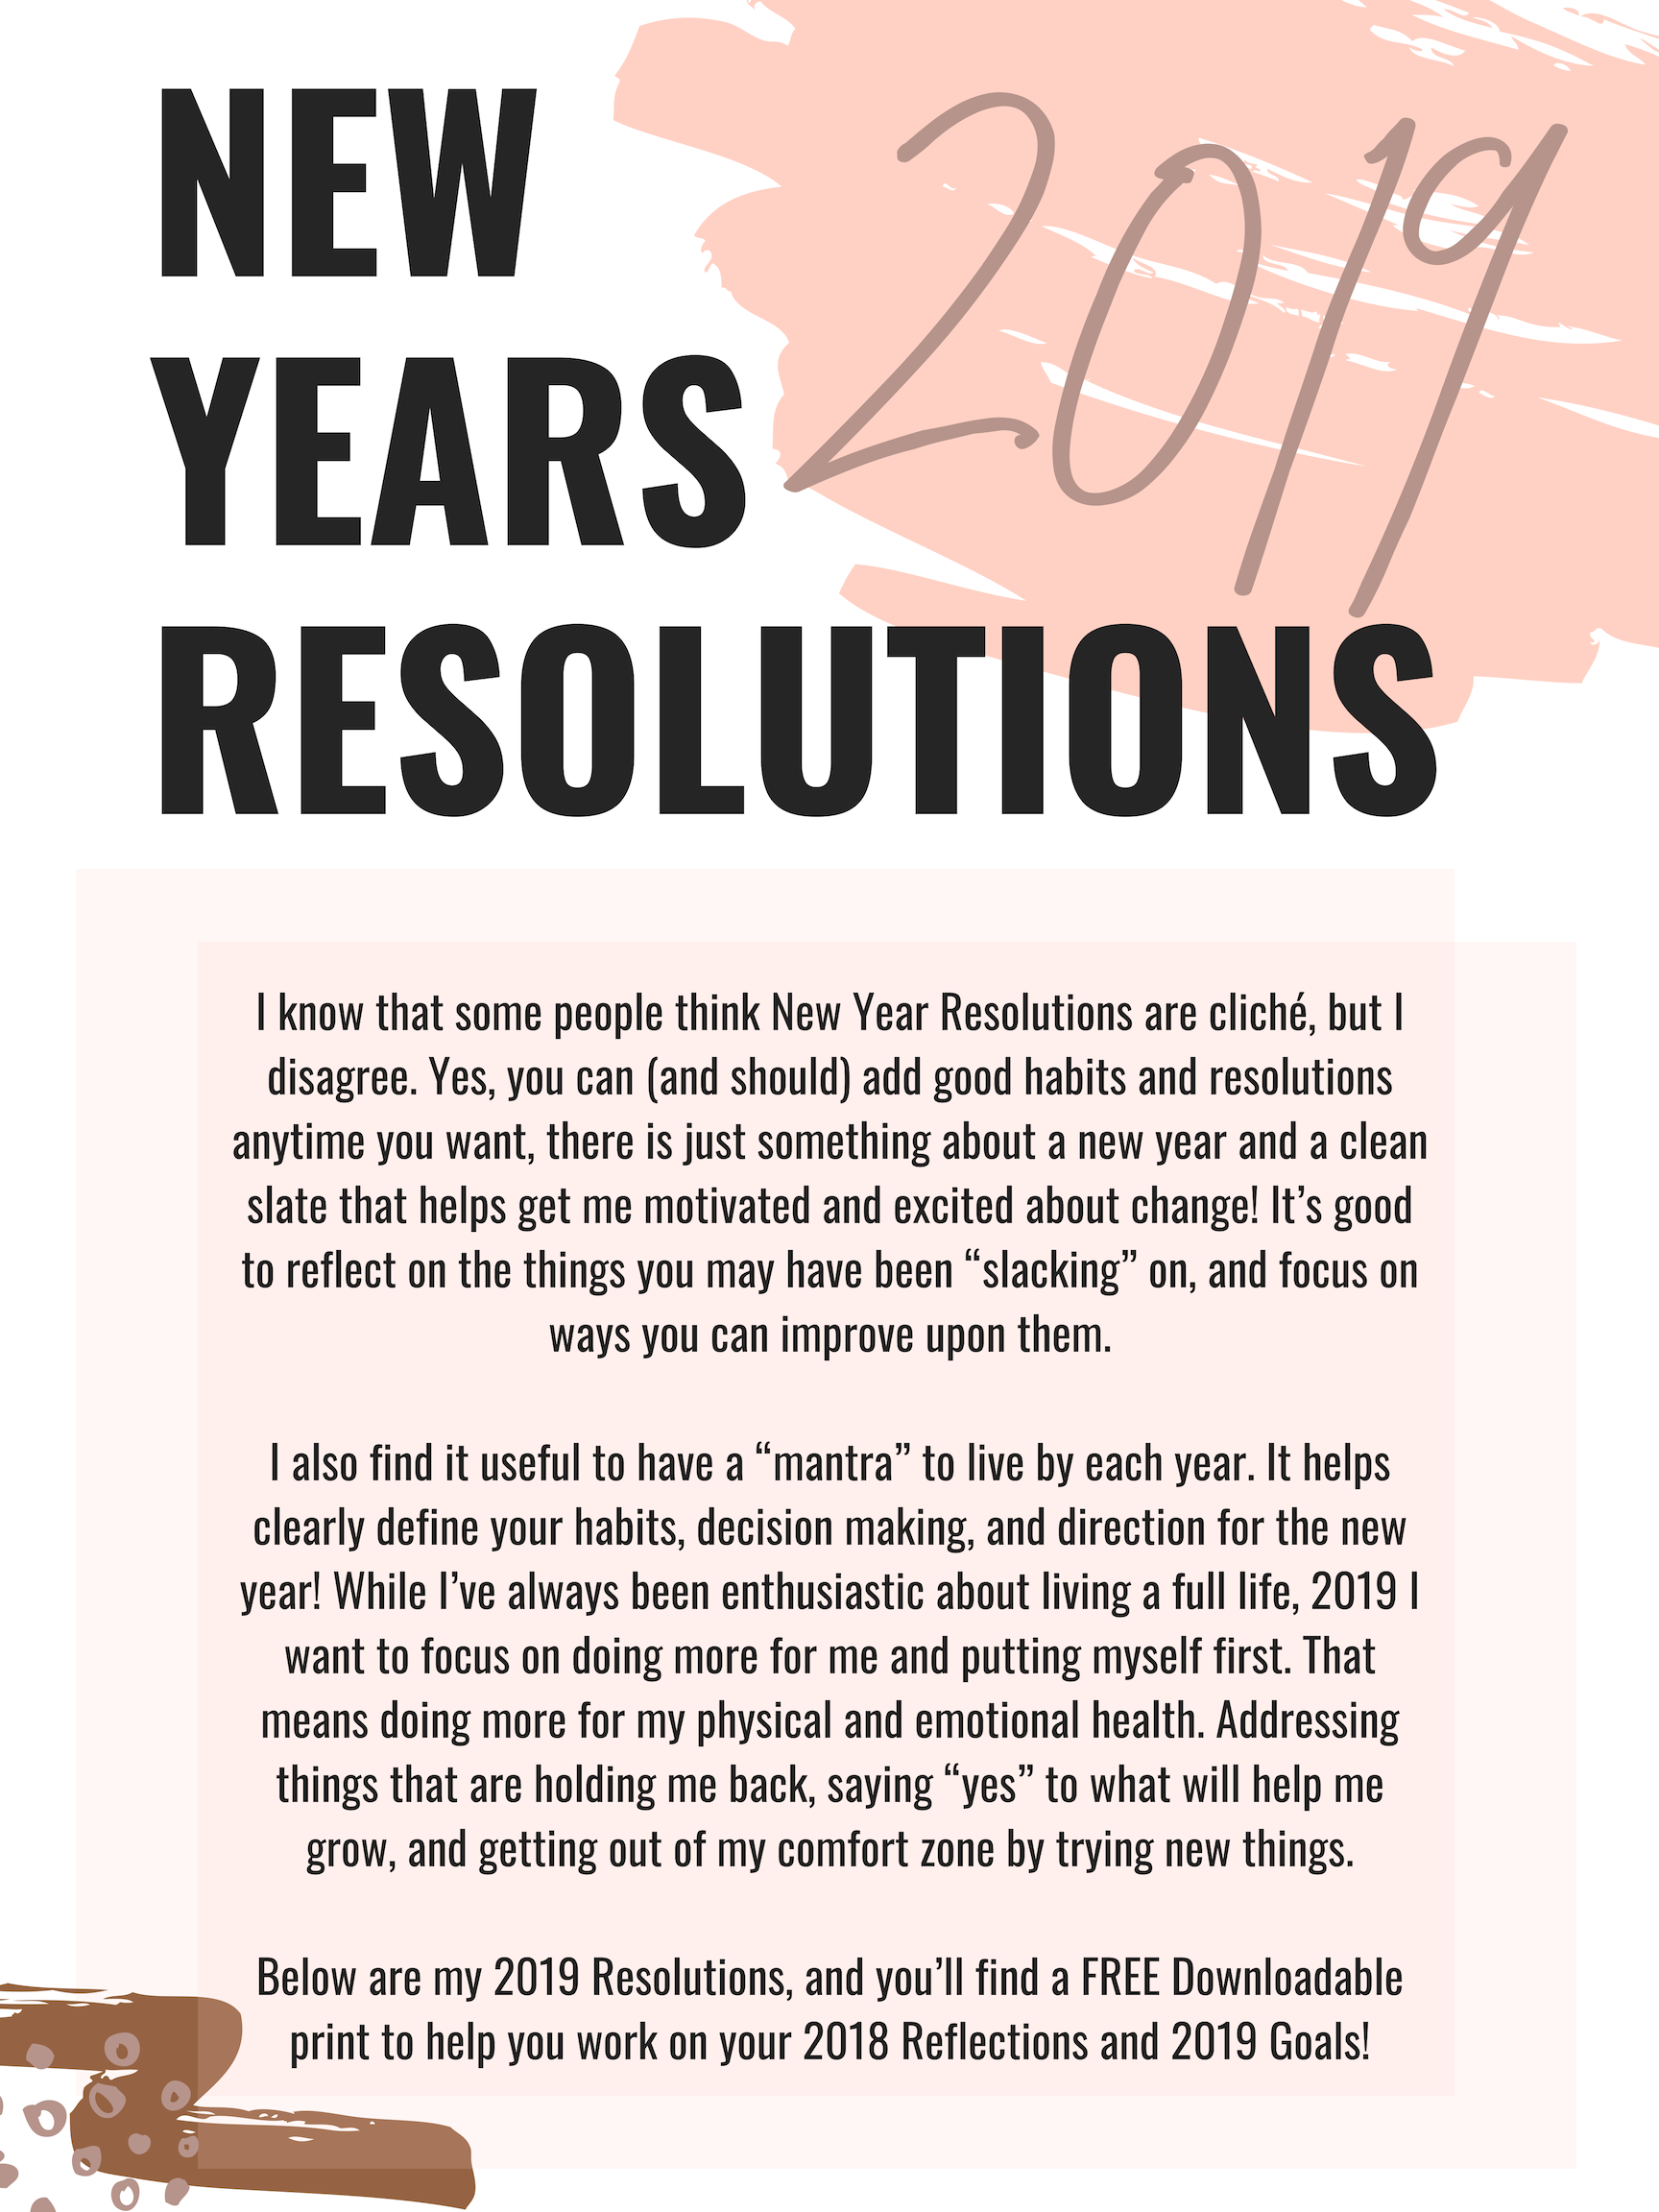 2019-new-years-resolutions.png